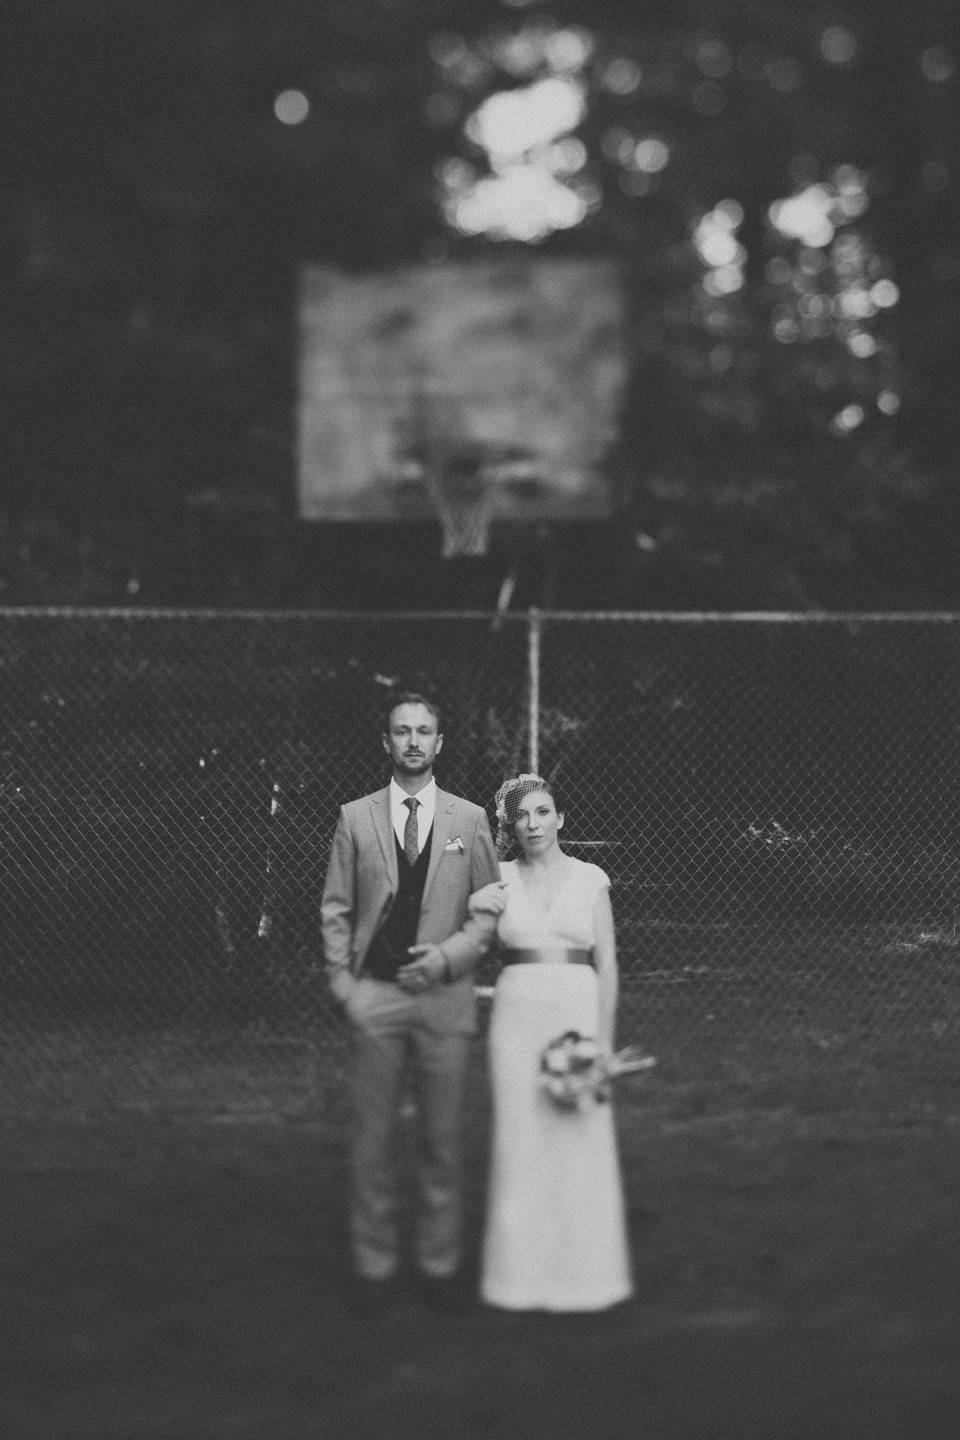 wedding photographer, portland